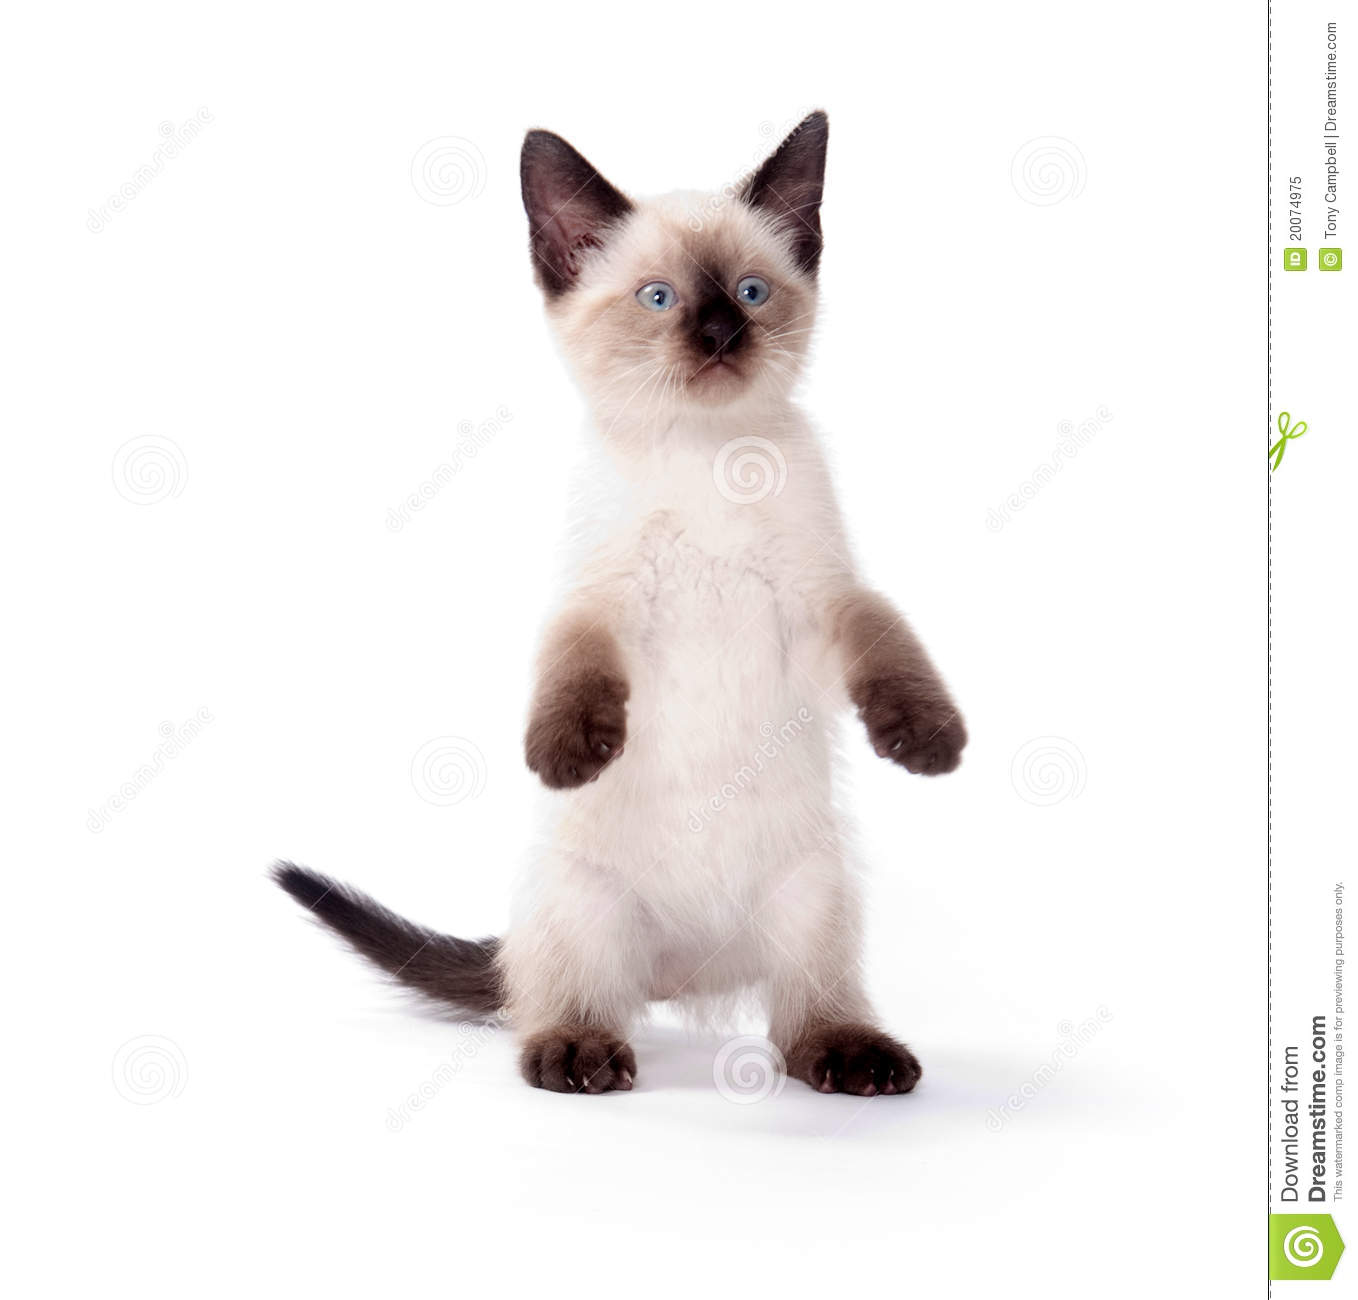 cute kitten on white background royalty free stock photo